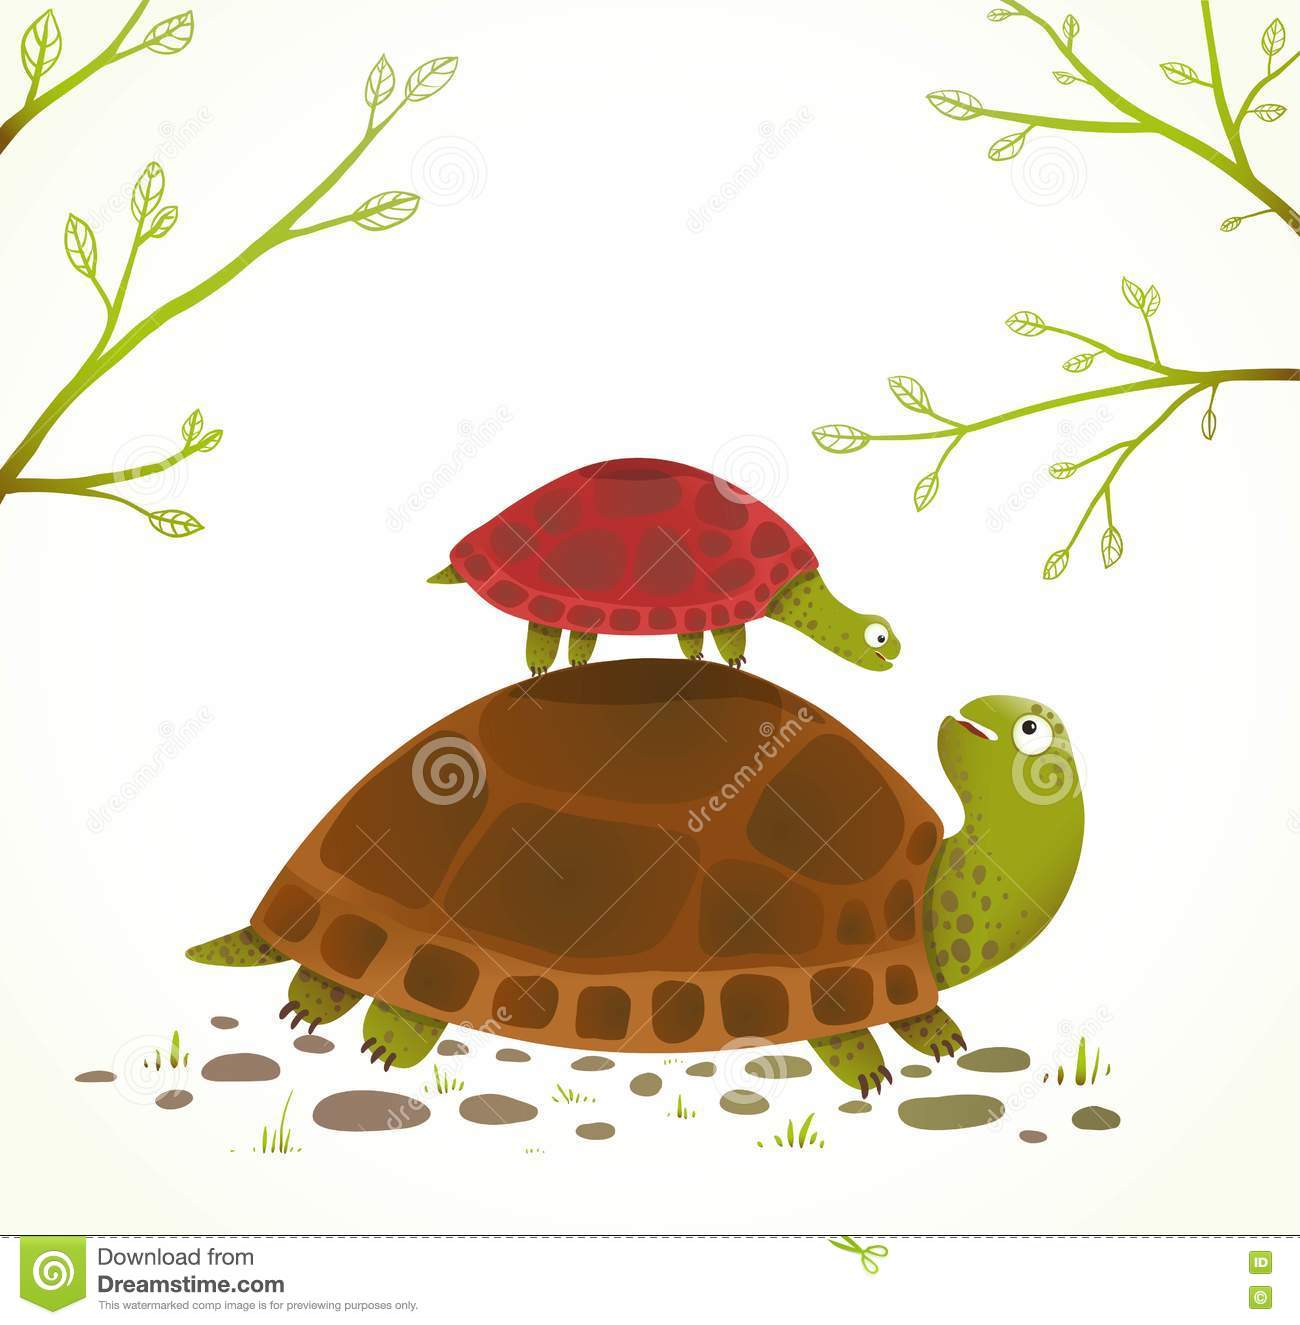 Turtle mama and baby clipart image black and white stock Turtle mama and baby clipart - ClipartFest image black and white stock